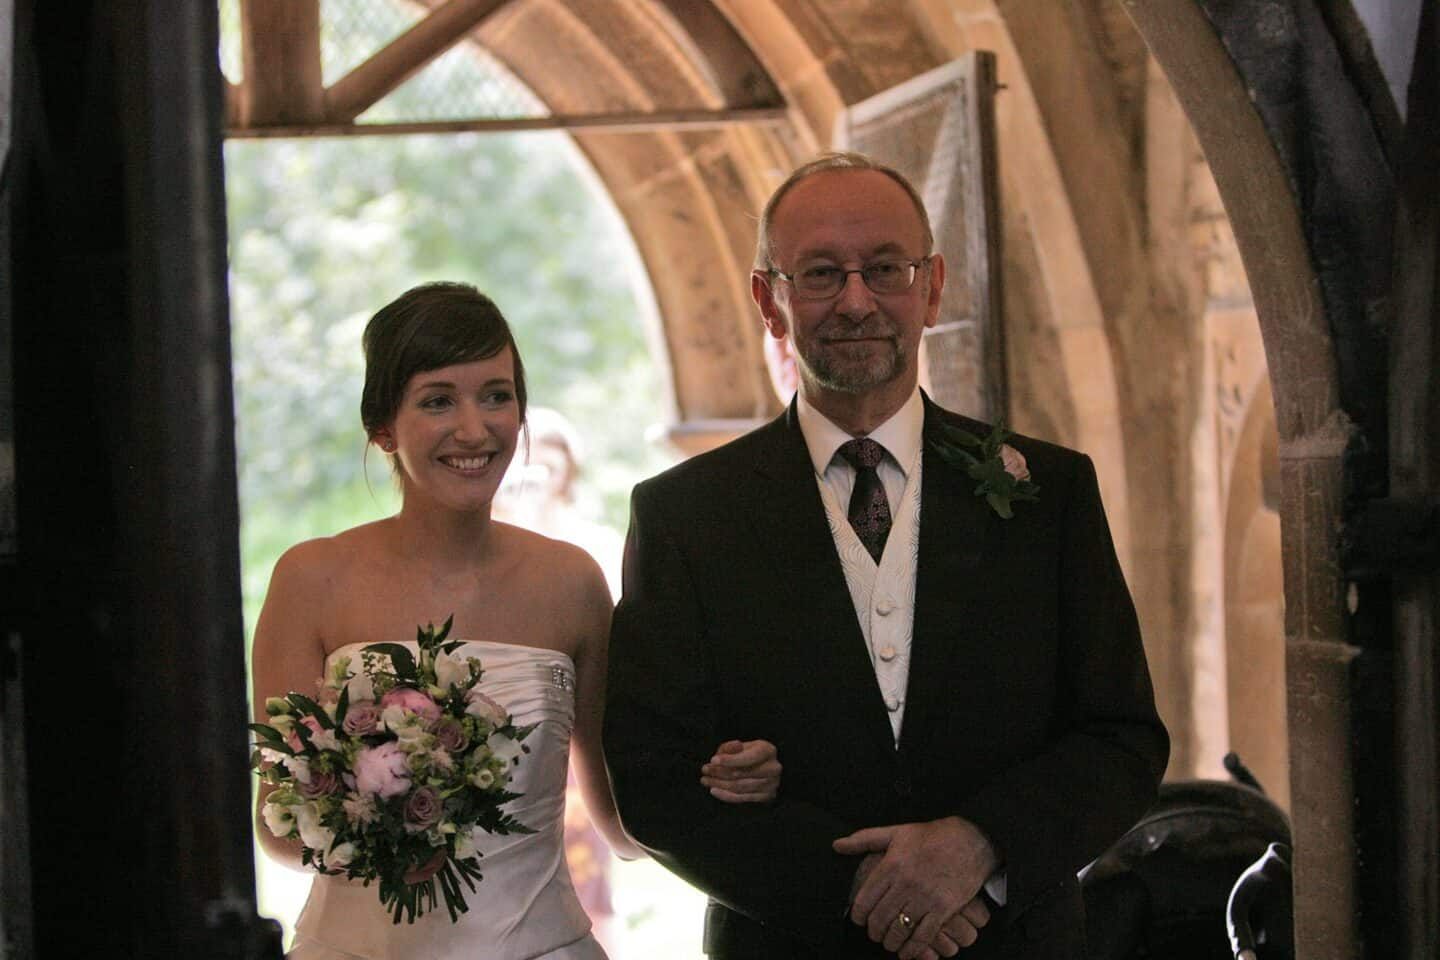 Becky Pink and her dad going into church on her wedding day